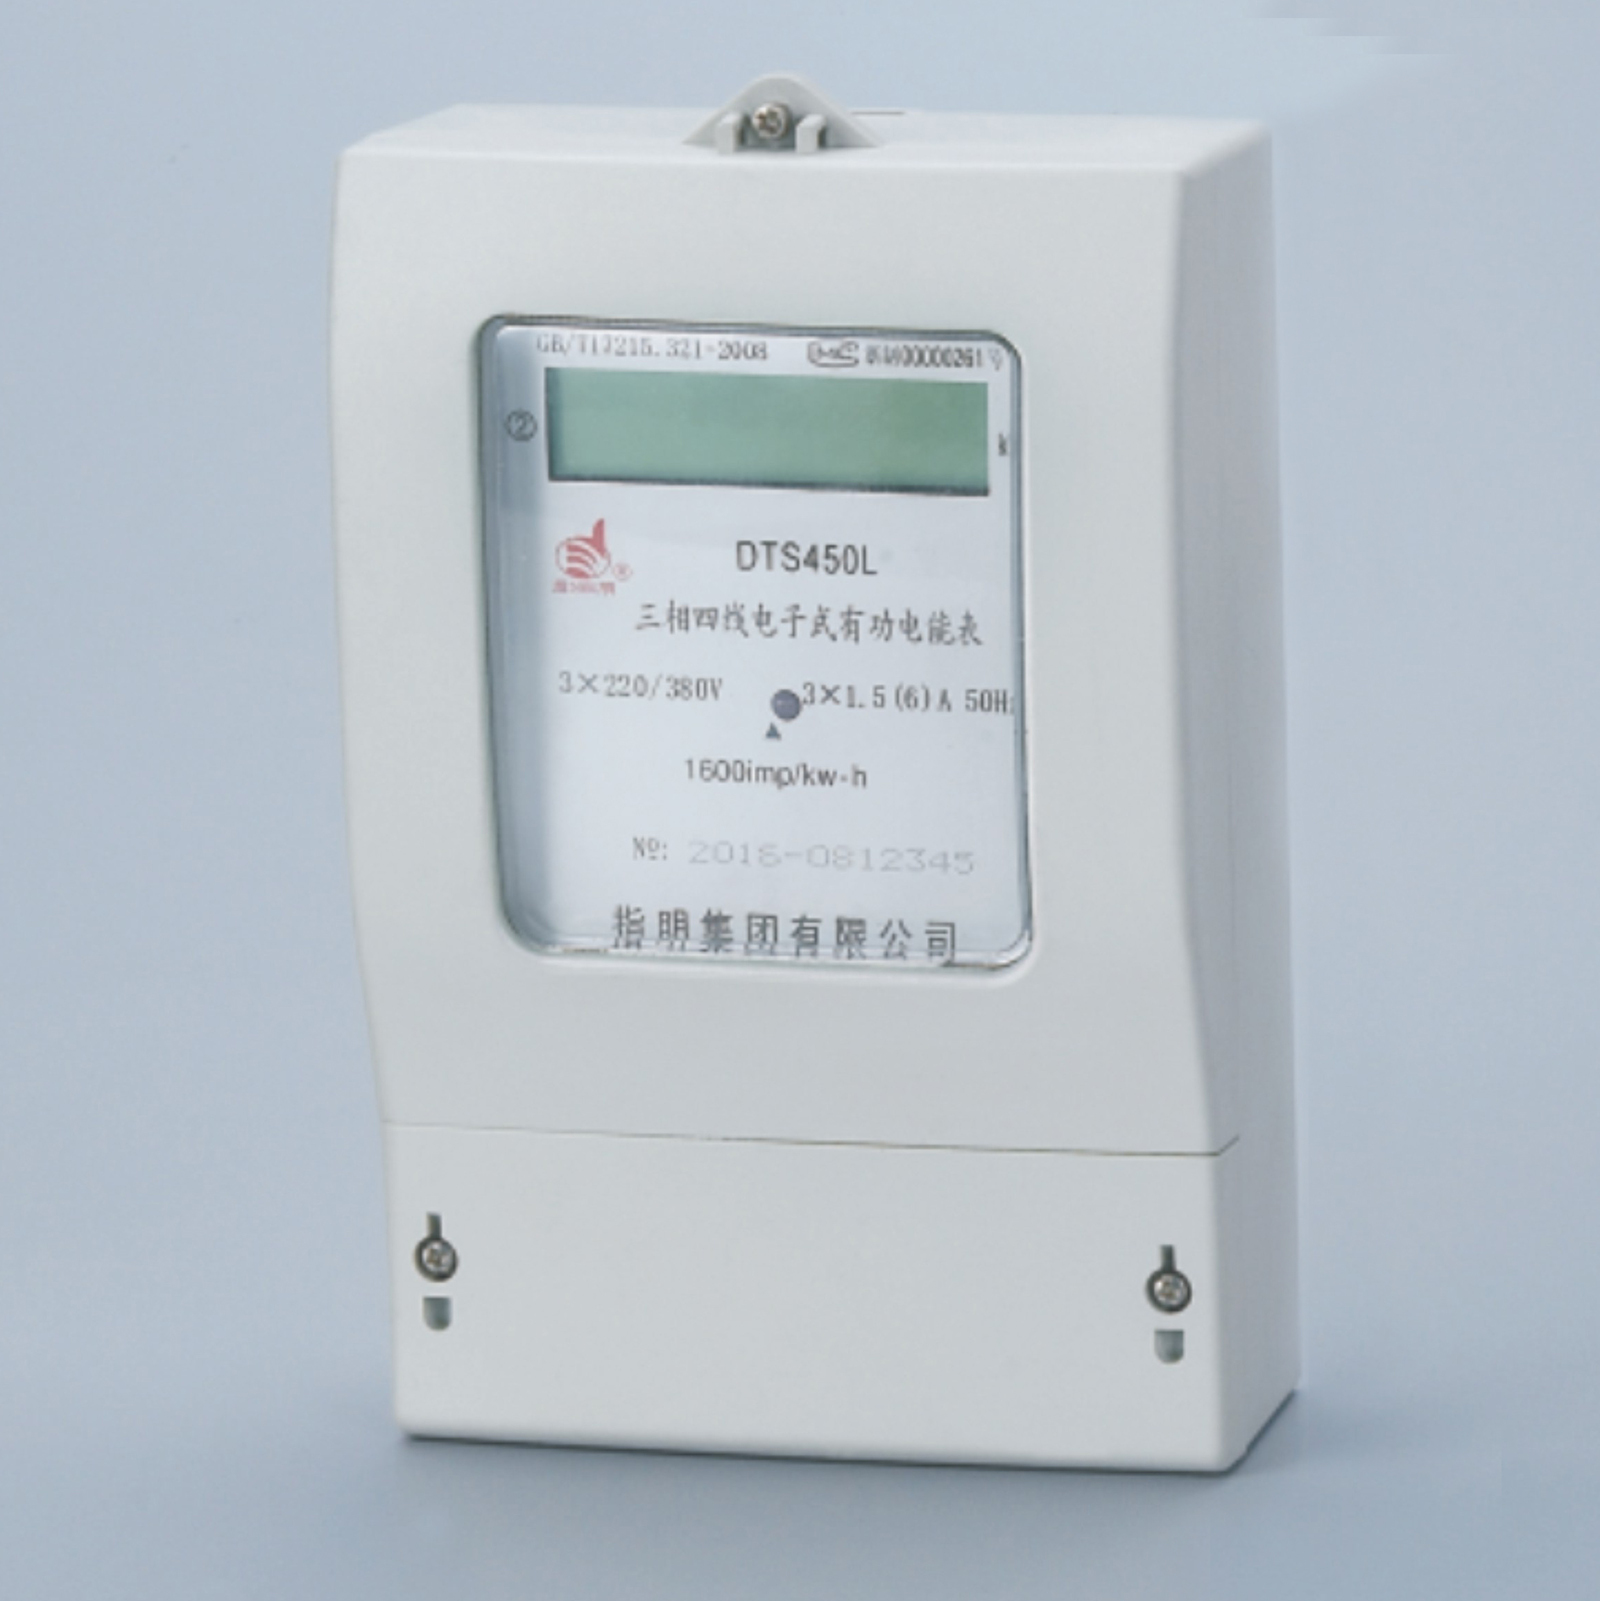 DTS450L, DSS450L Three-phase electronic watt-hour meters with LCD